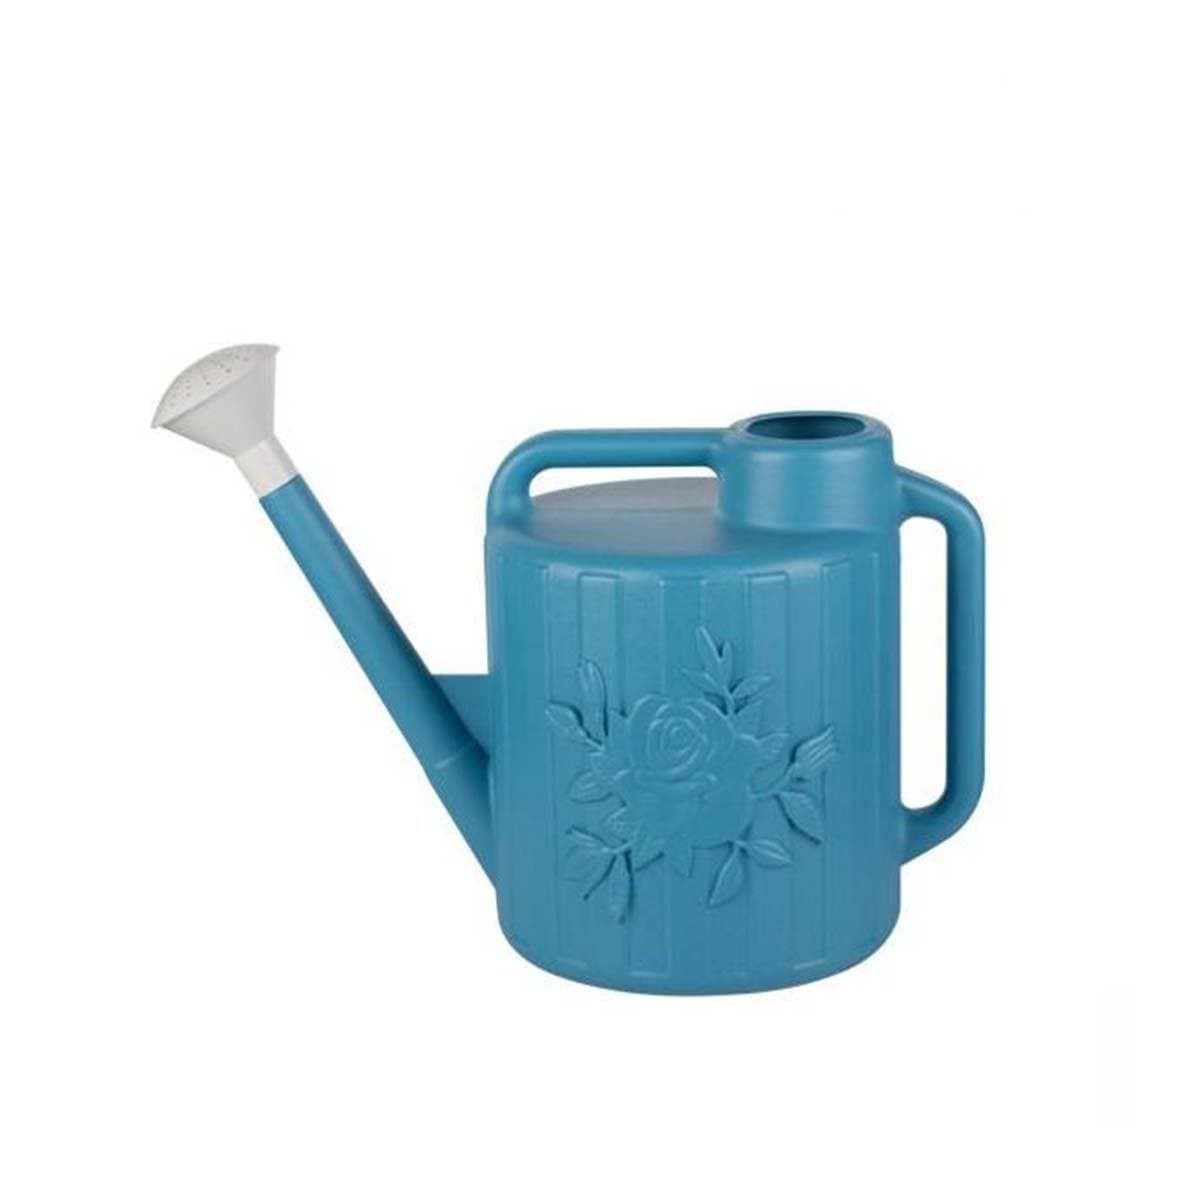 FWC2240 Felton Watering Can